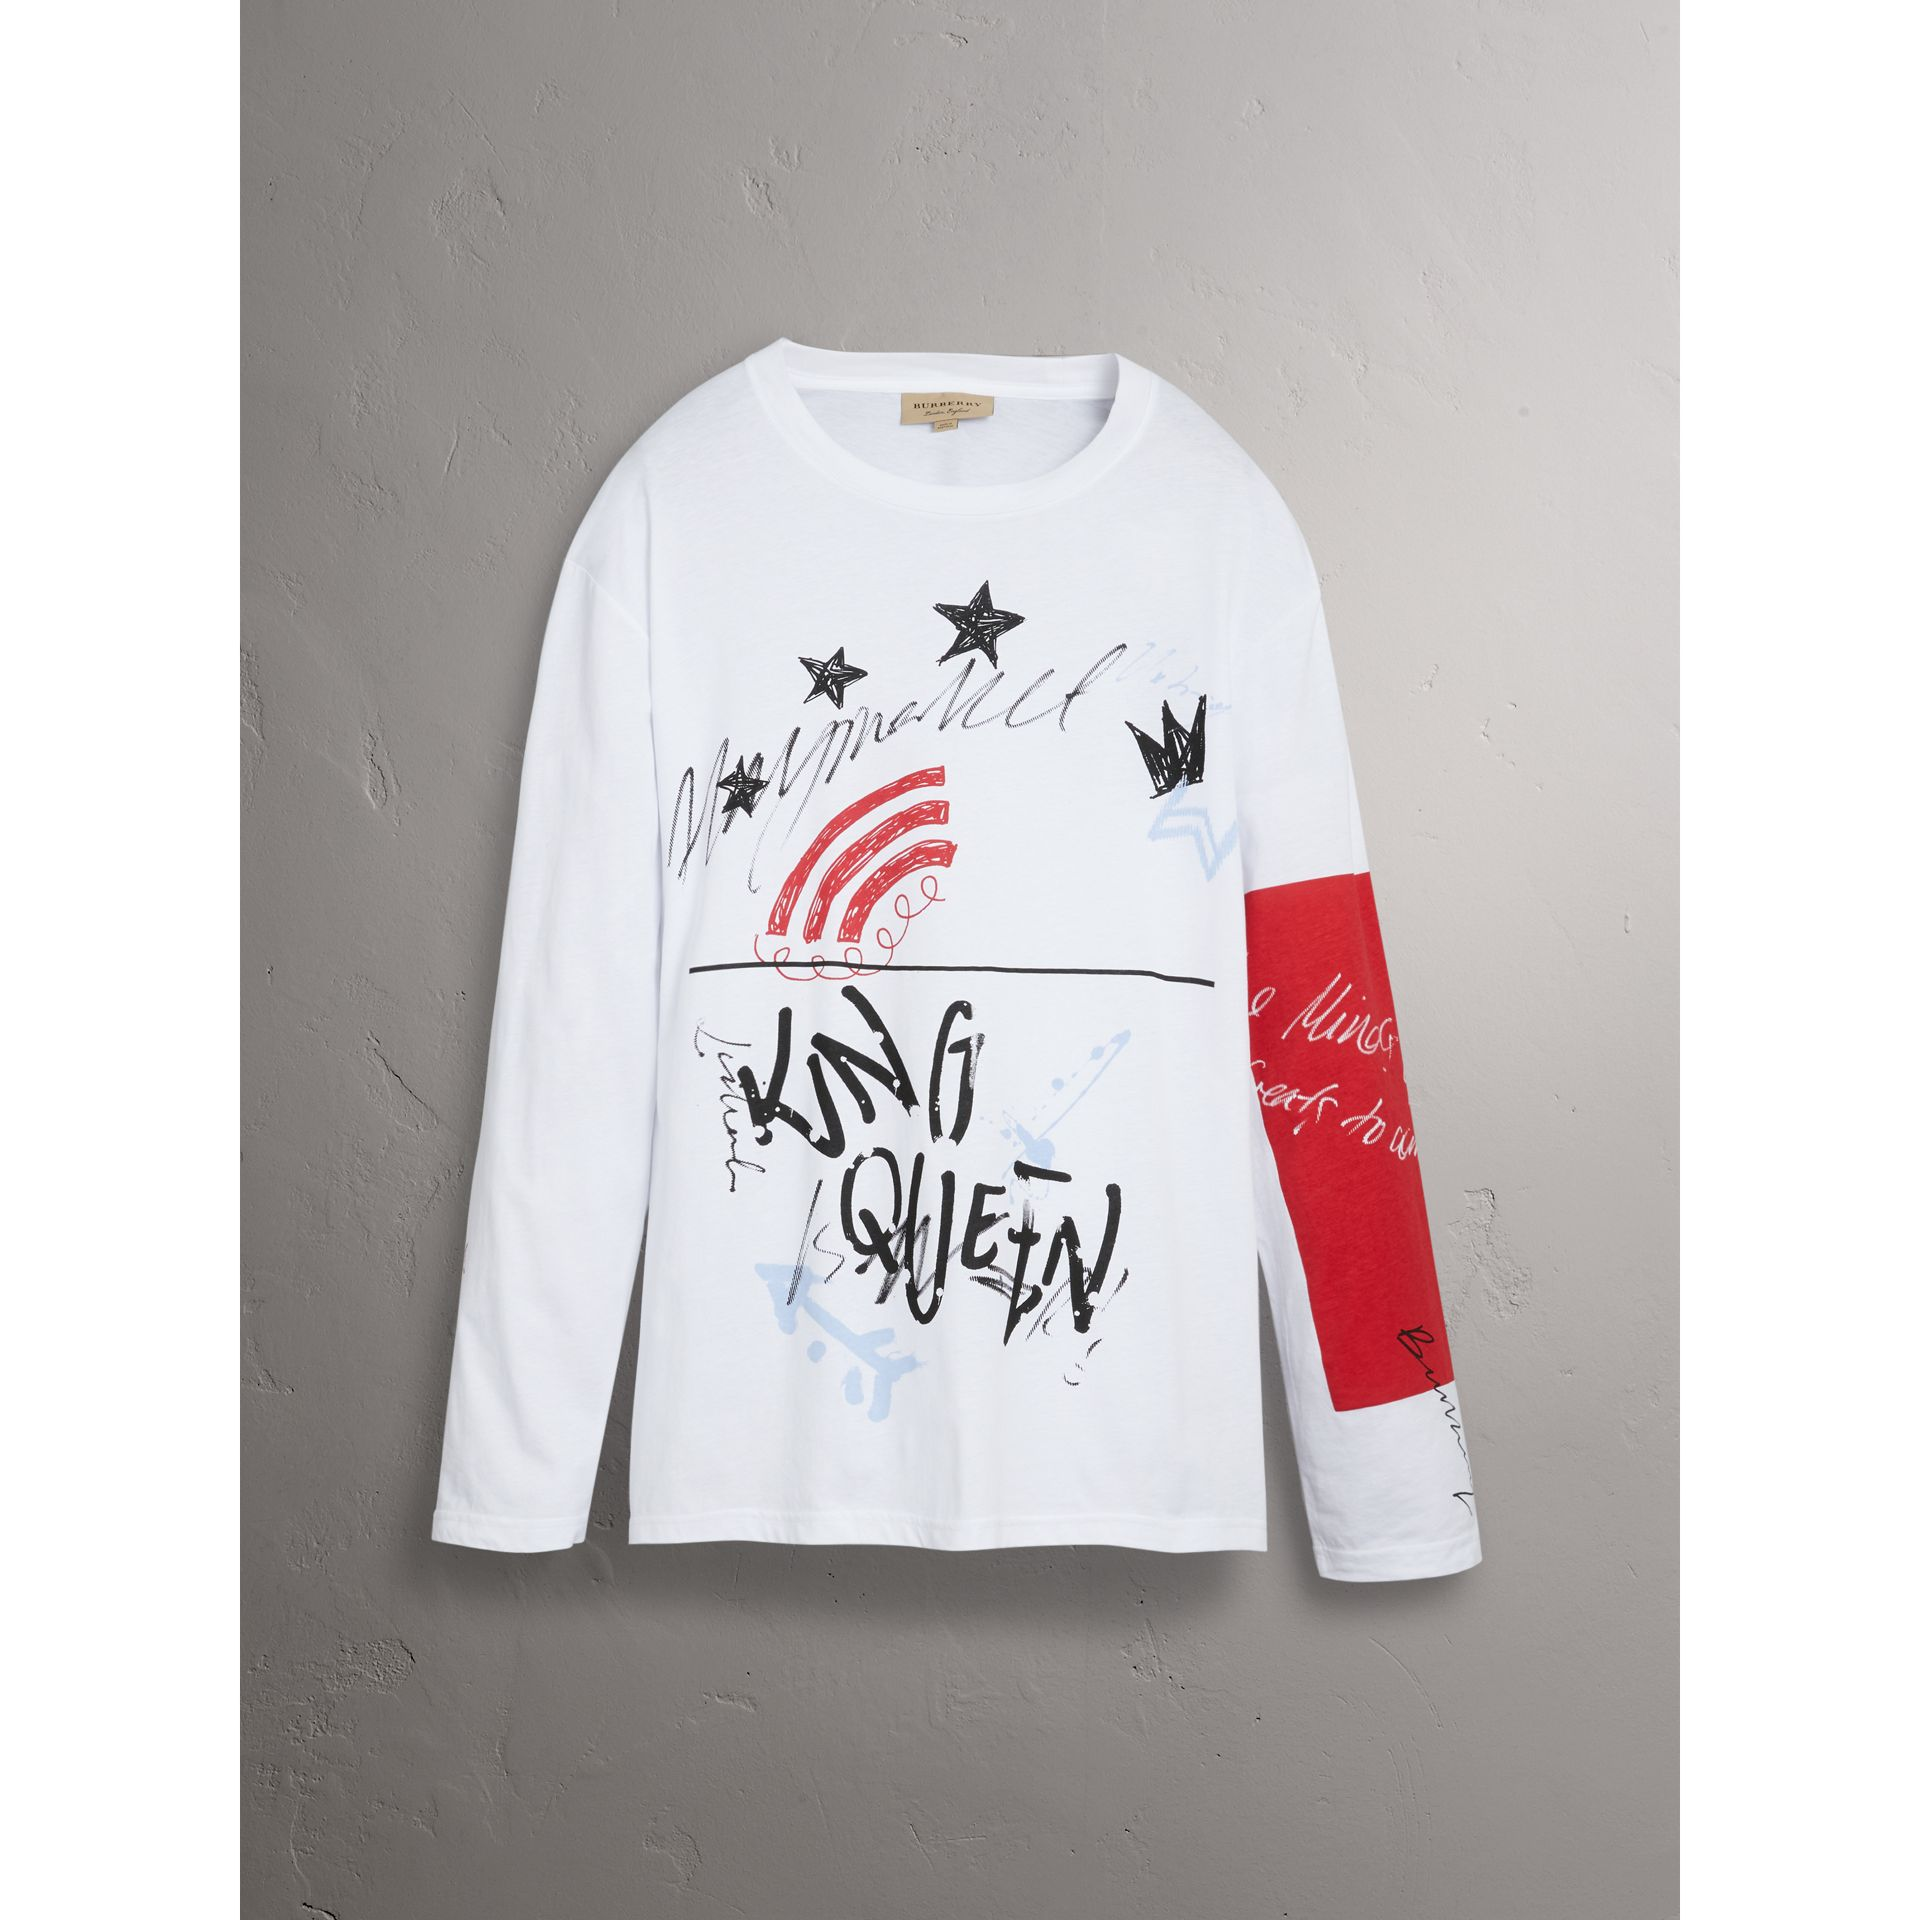 Burberry x Kris Wu Long-sleeve Printed Cotton Top in White - Men | Burberry - gallery image 3